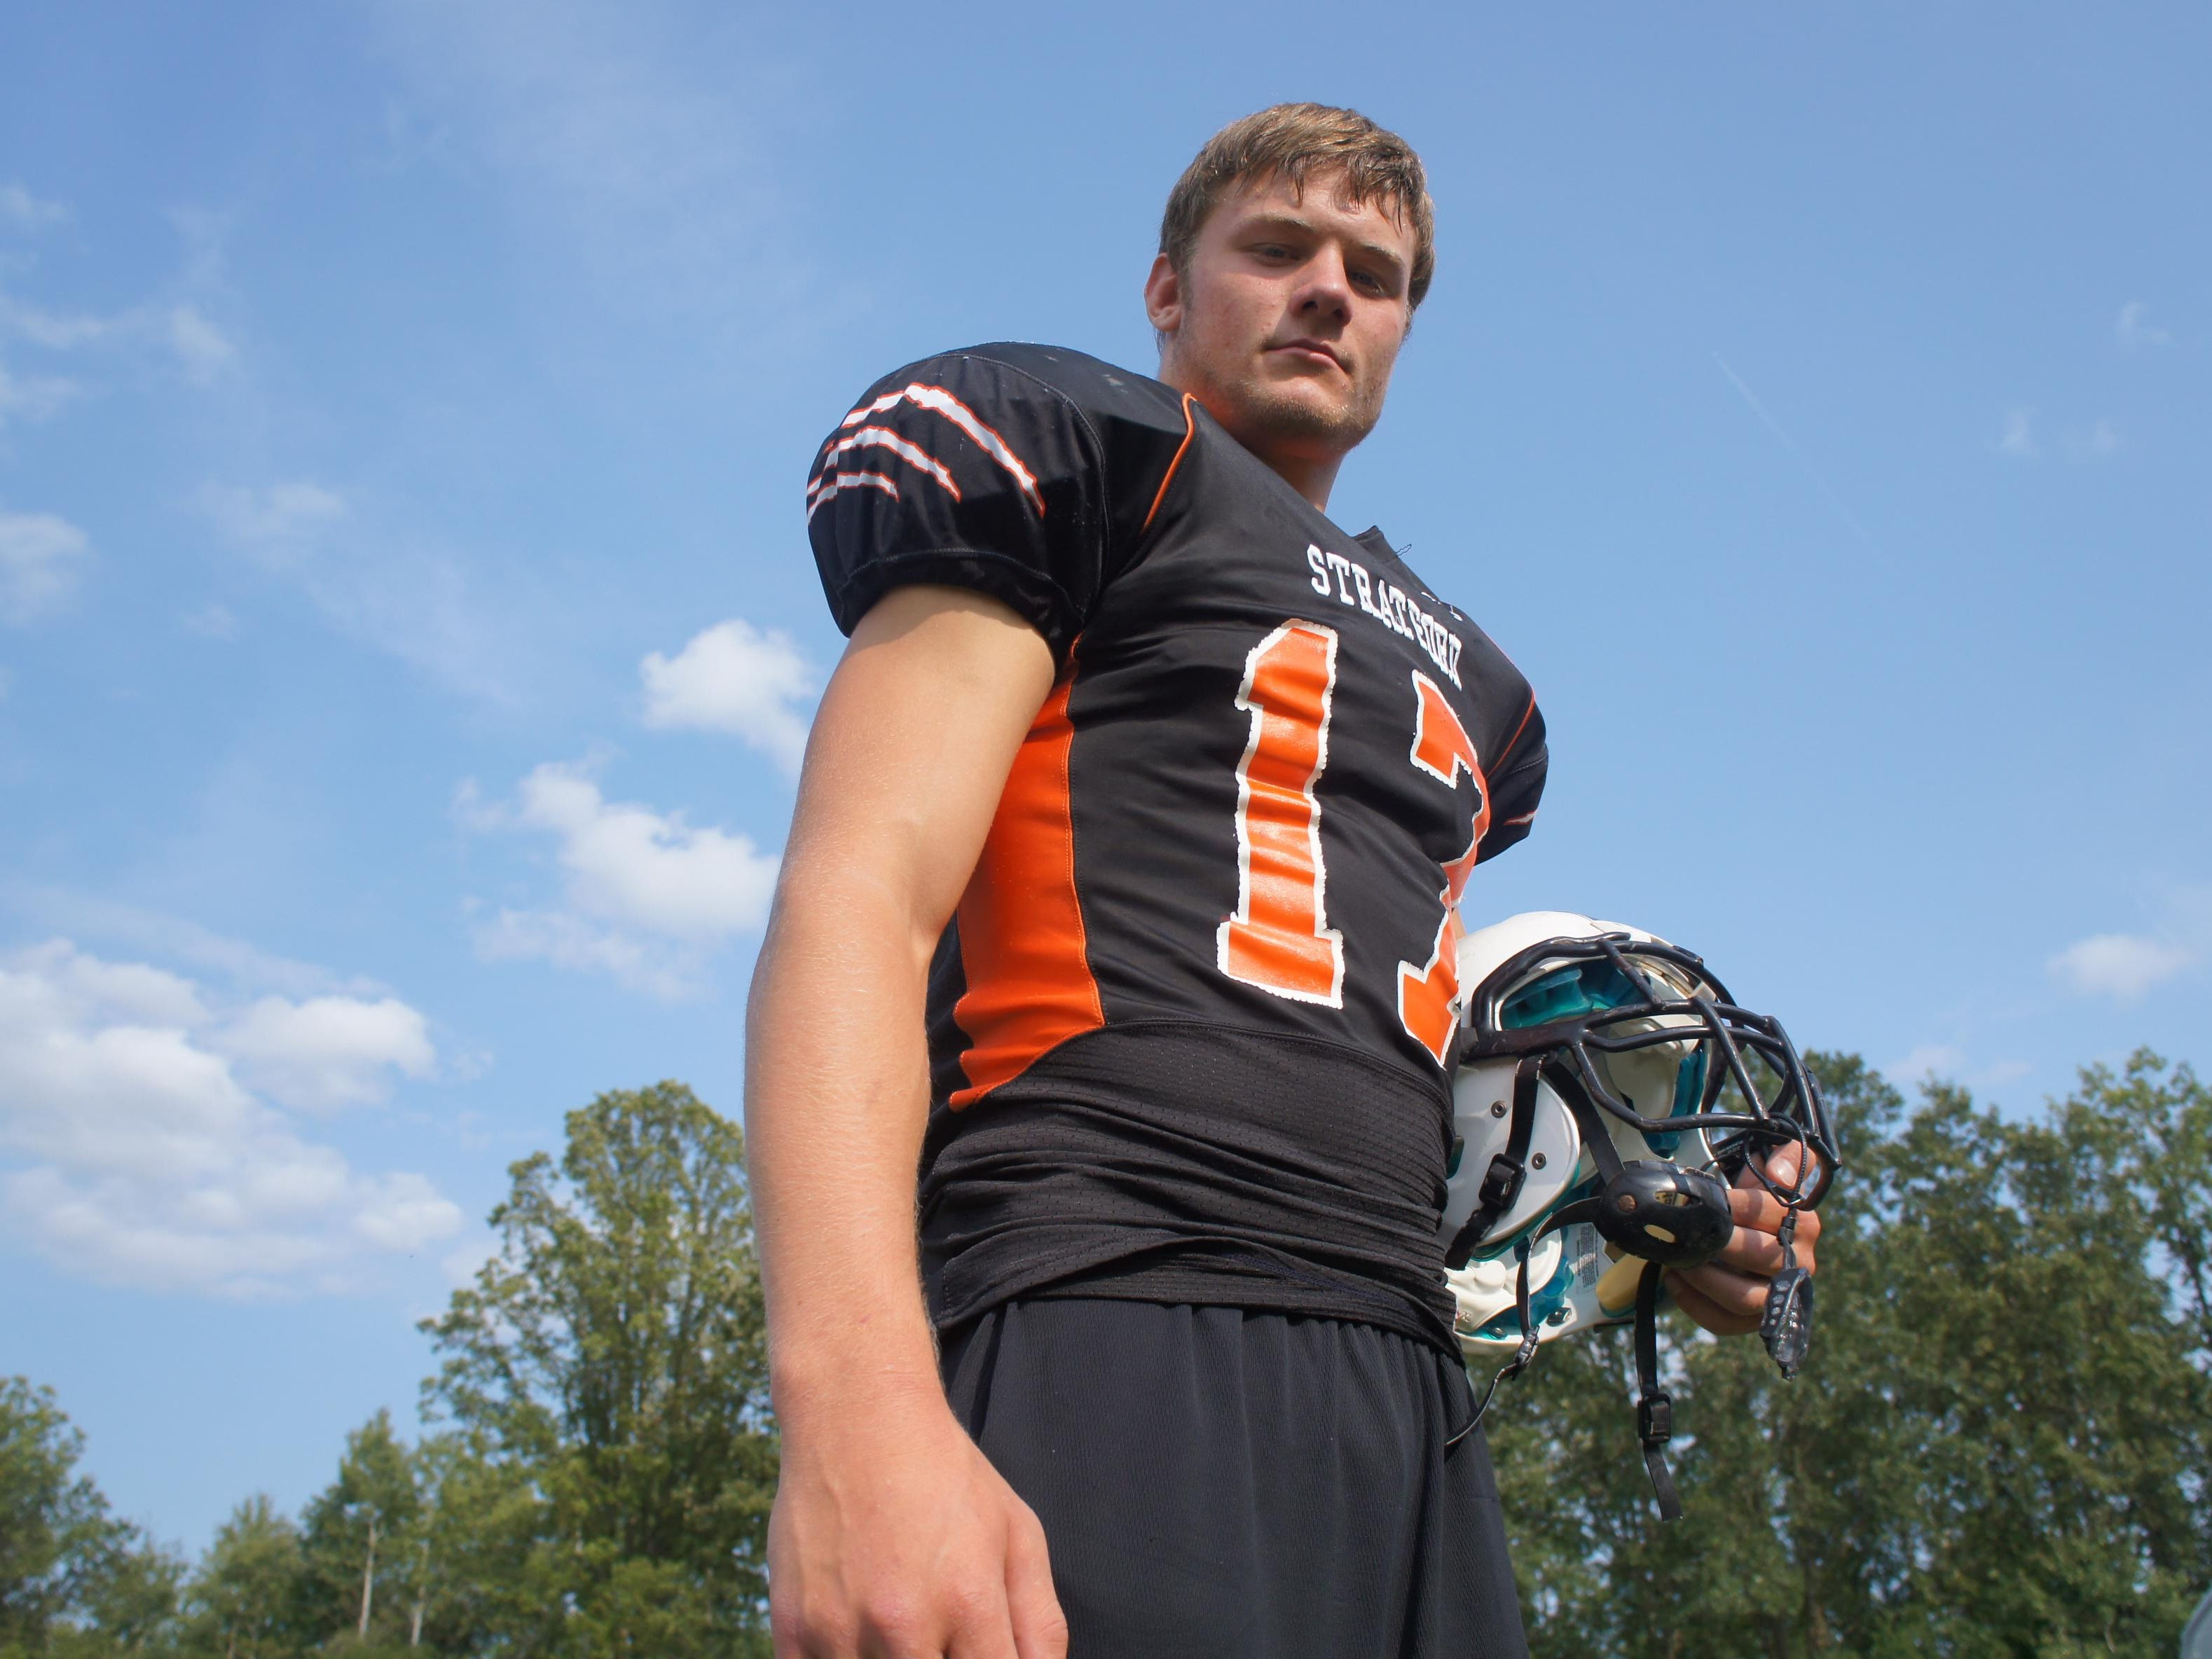 Stratford senior Taylor Krall is a three-sport student-athlete for the Tigers and a key to the football team's 2-0 start.